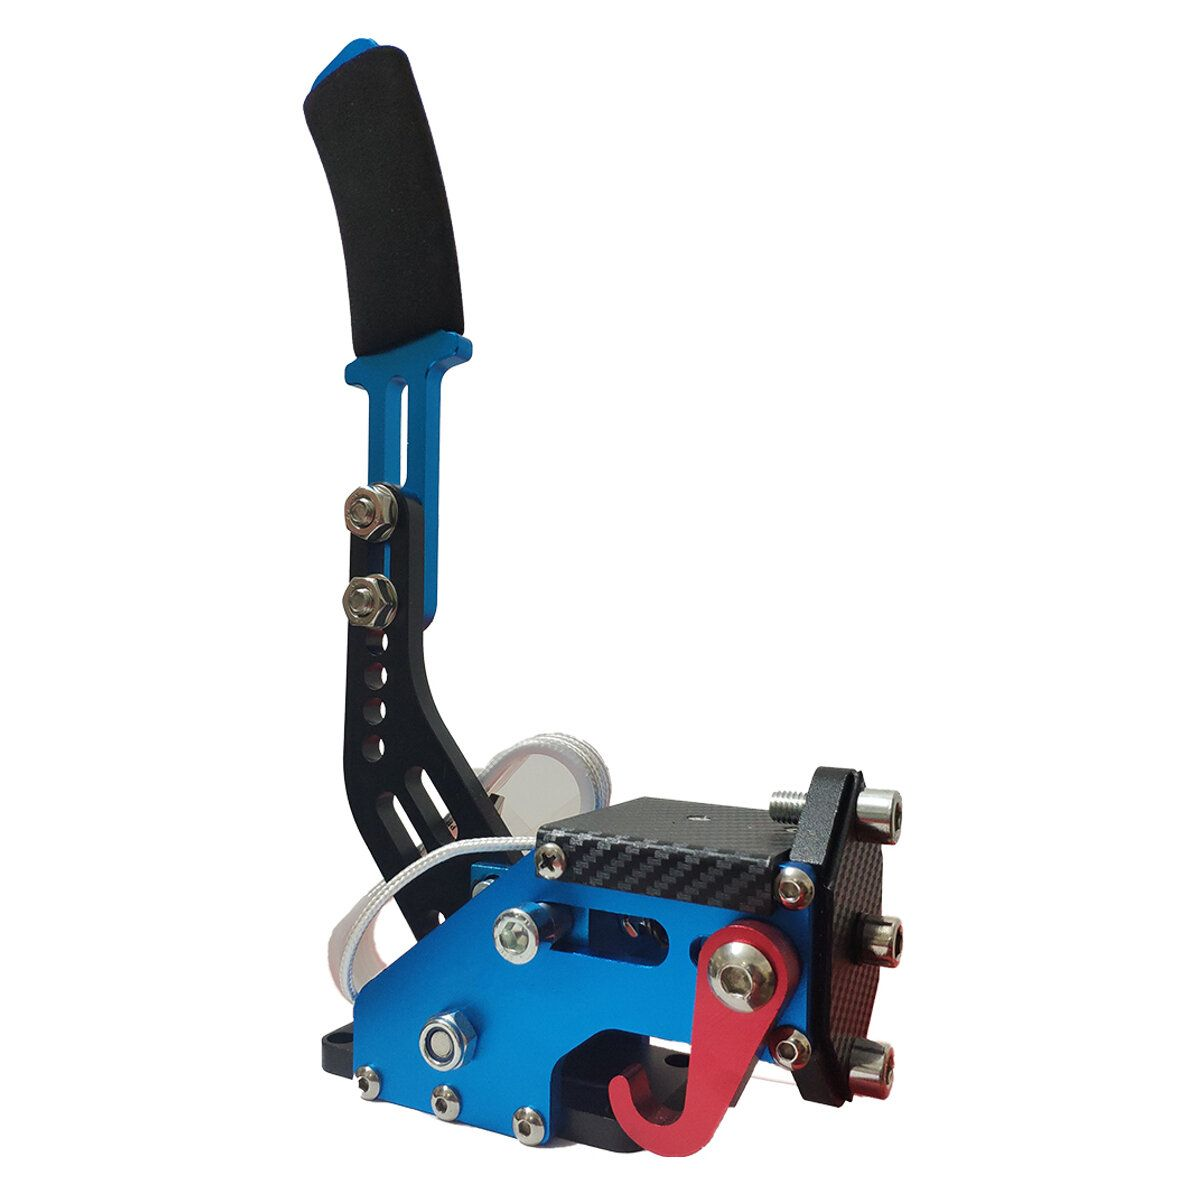 14Bit PC USB Handbrake Hydraulic Lever SIM Without Clamp For Racing Games G25/27/29 T500 FANATECOSW DIRT RALLY